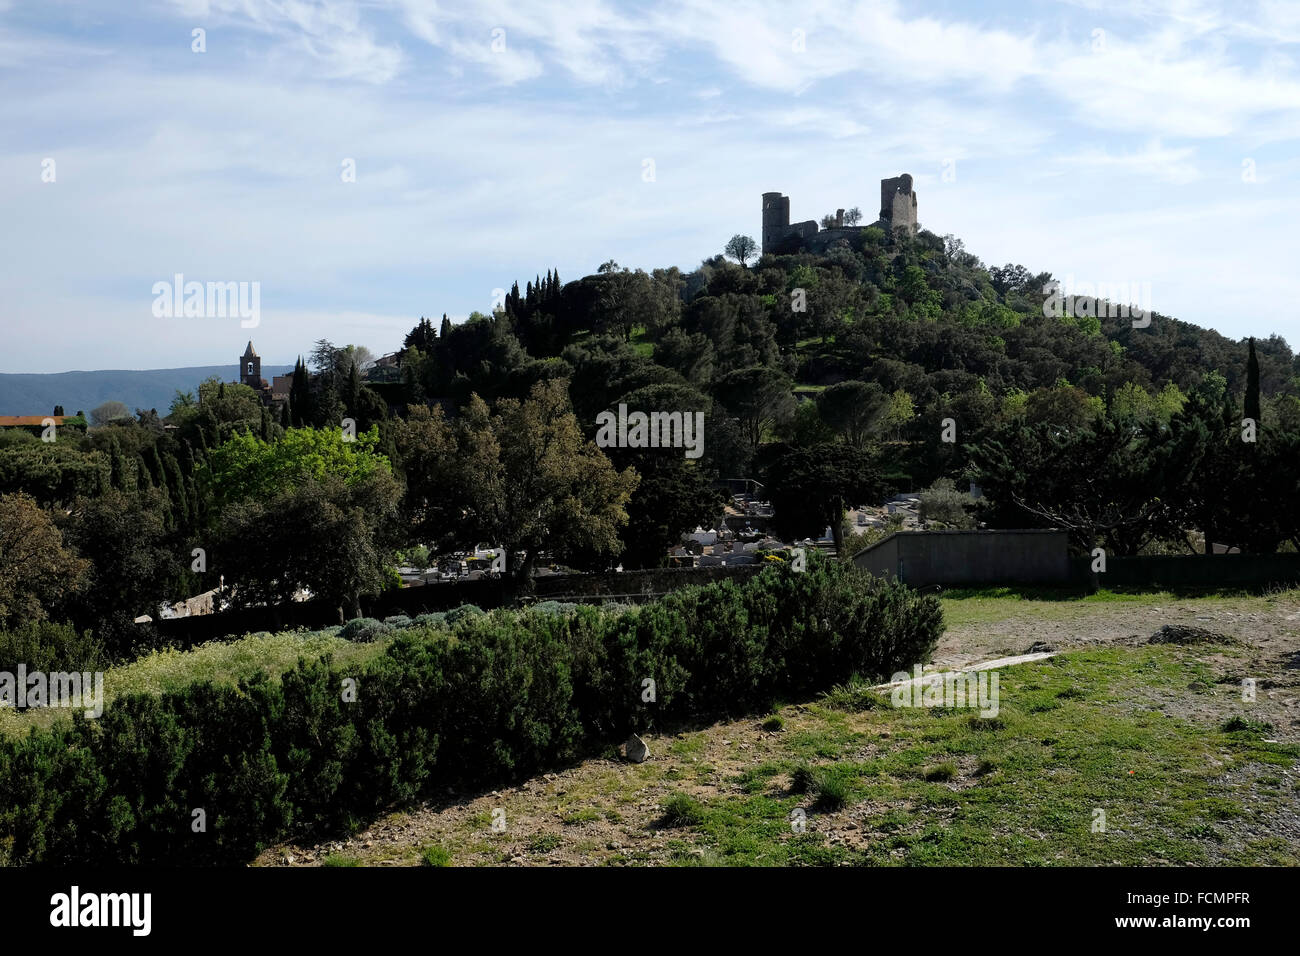 Grimaud, South of France, showing the ruined castle on top of the hill. - Stock Image